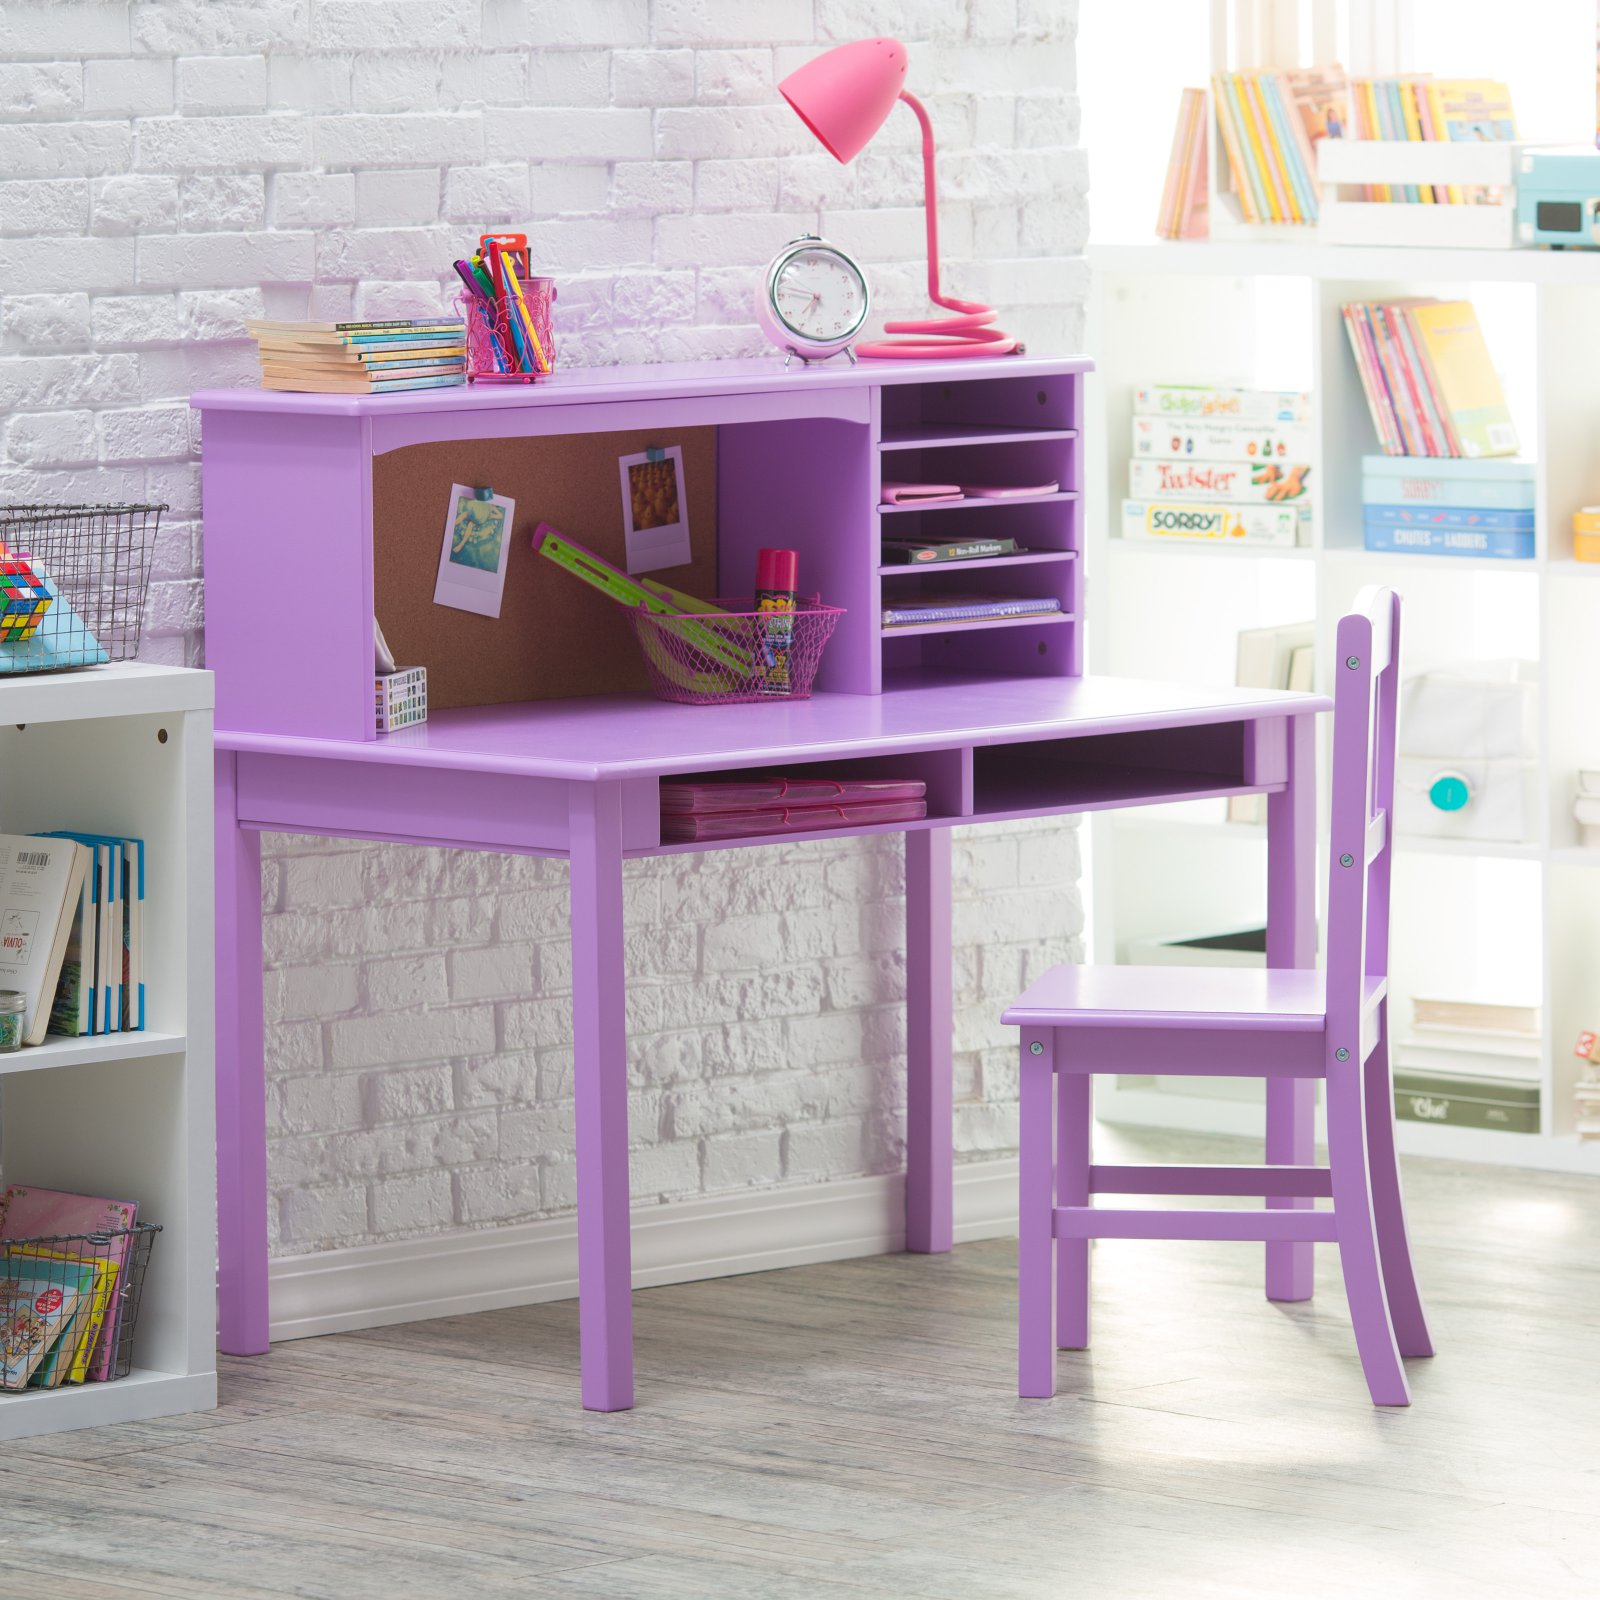 Guidecraft Media Desk & Chair Set - Lavender